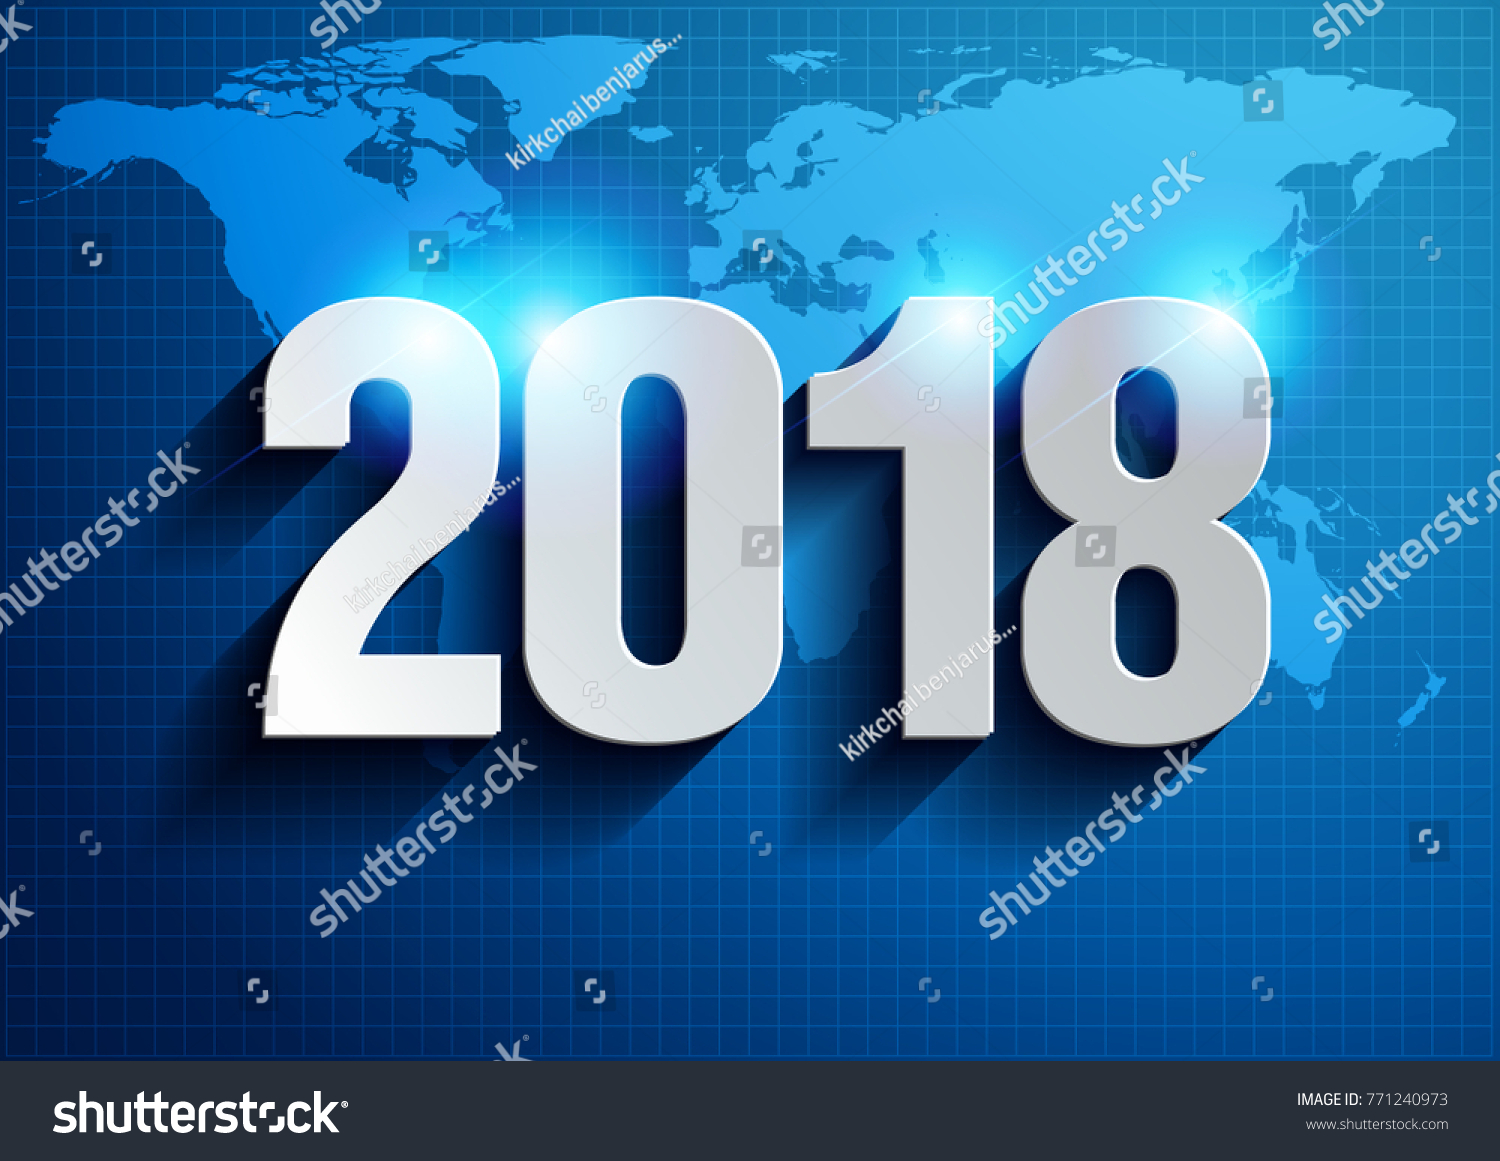 happy new year 2018 illustration vector world map background